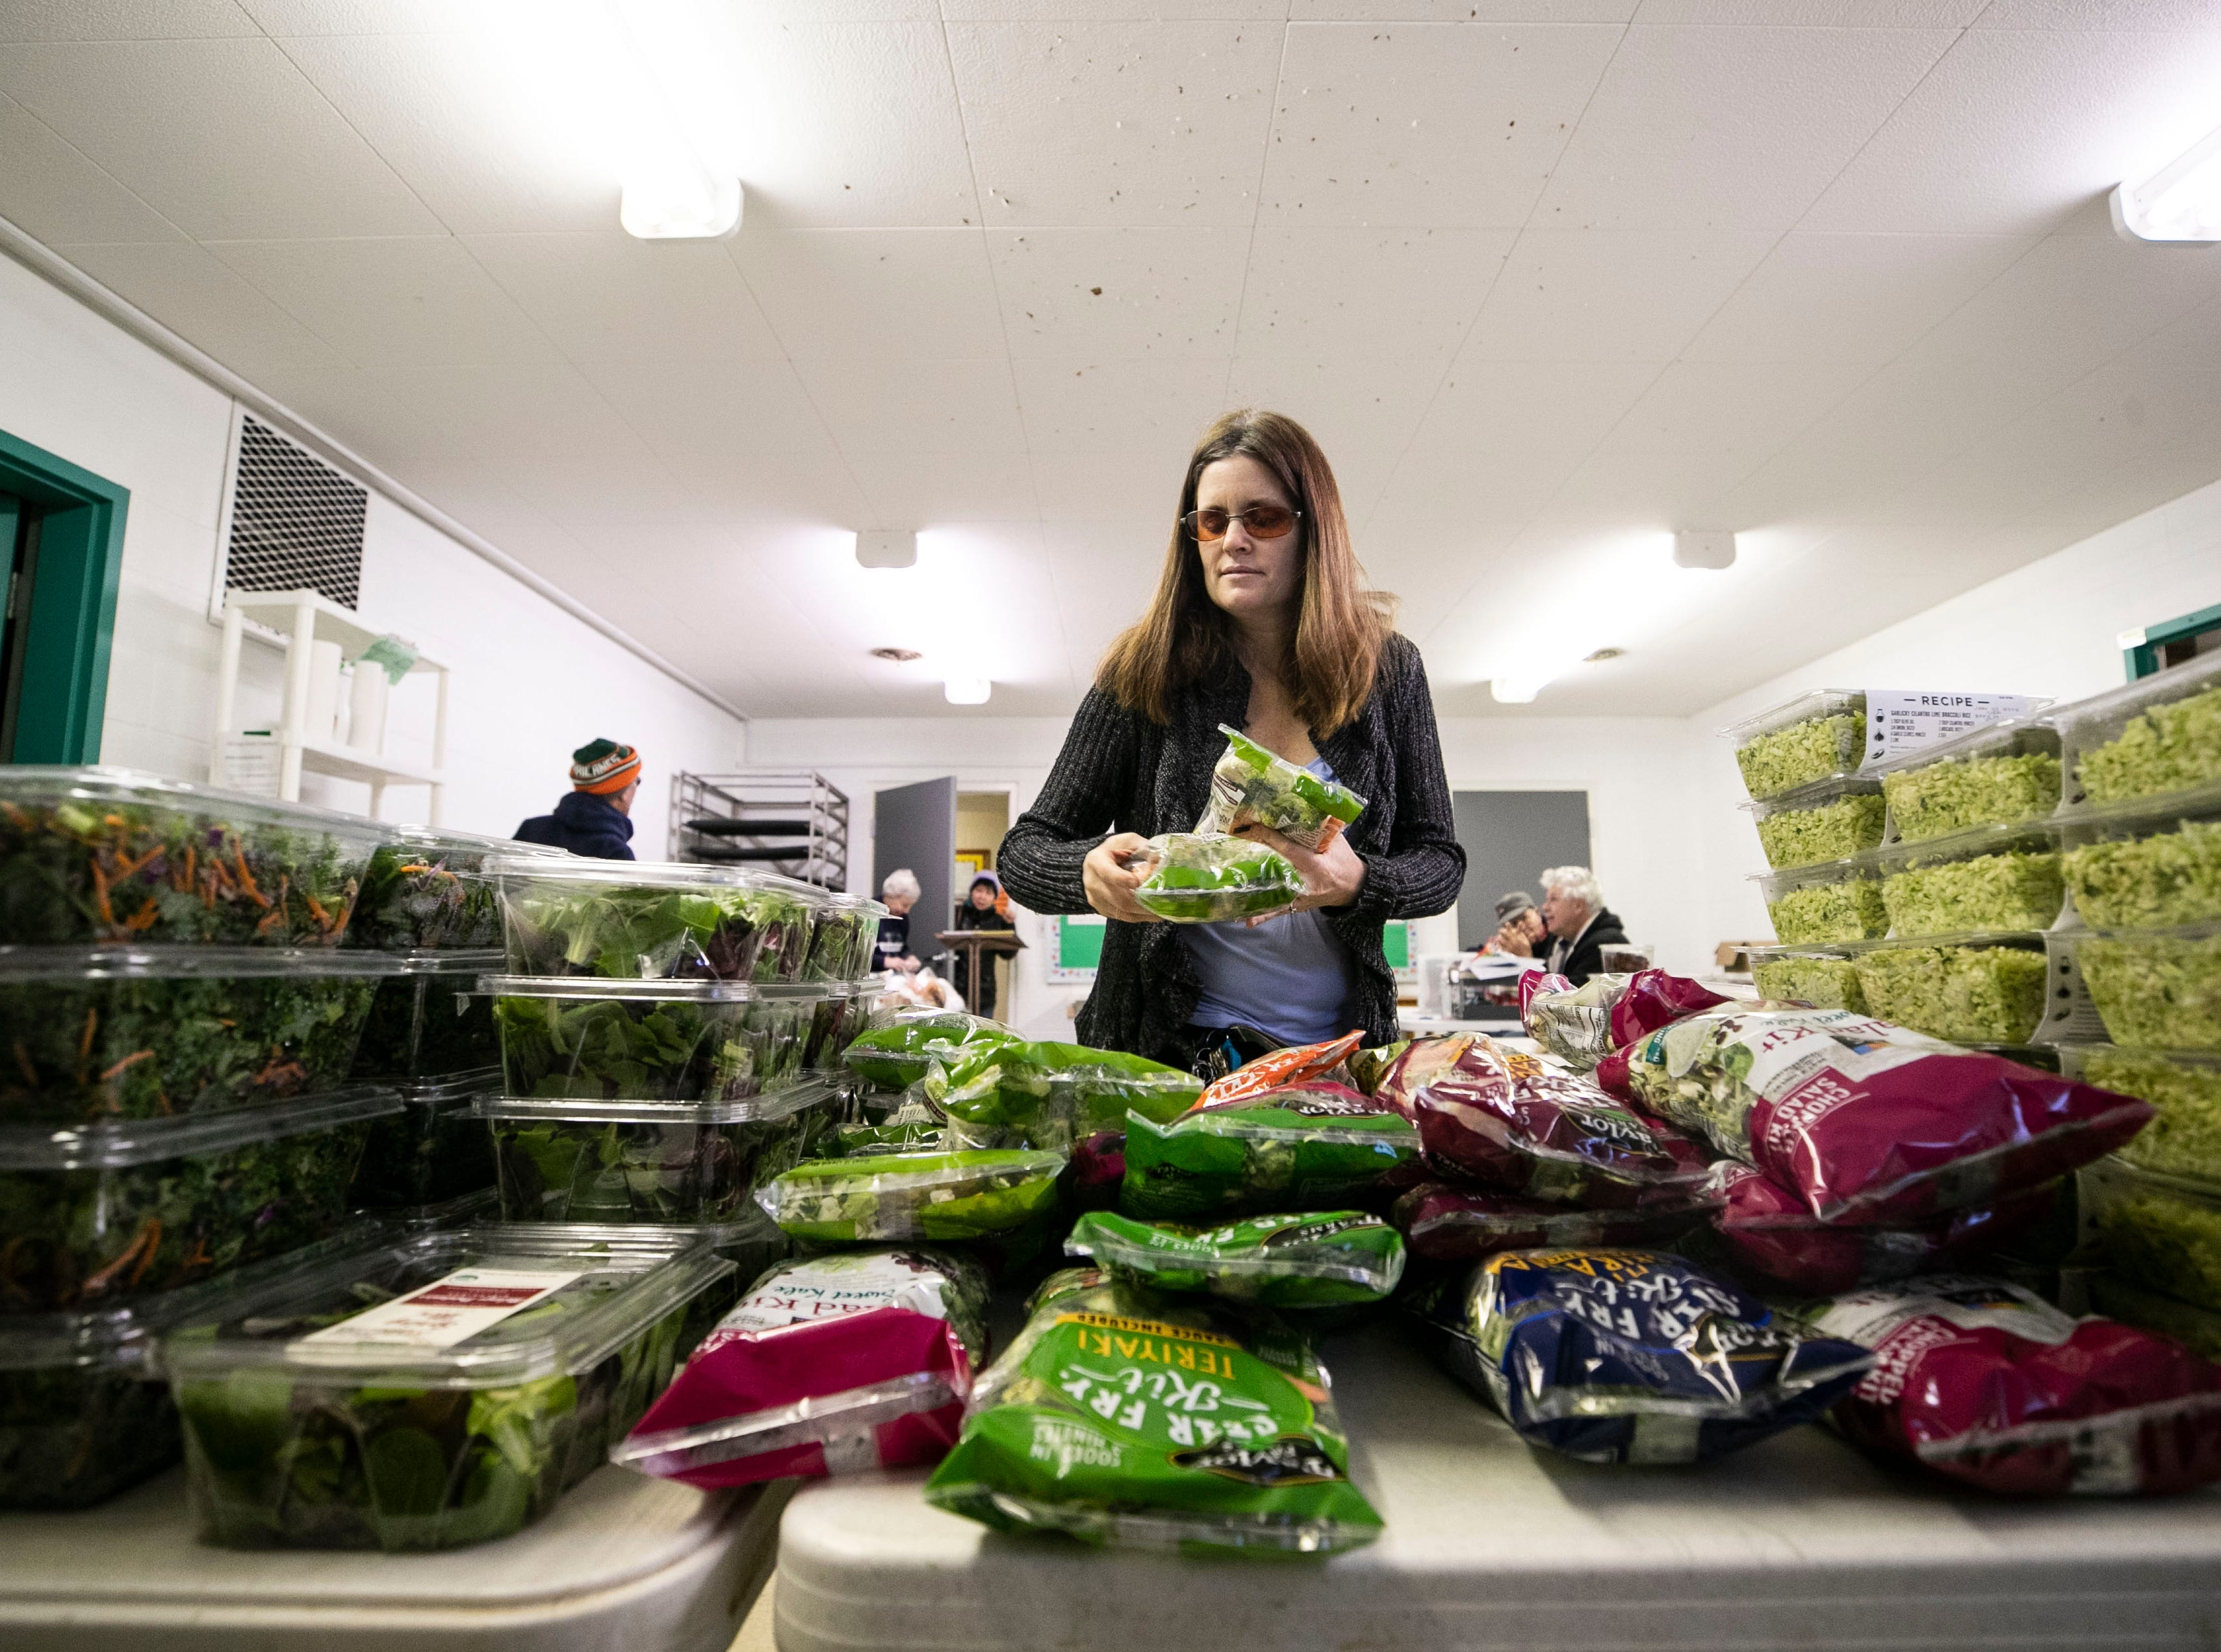 Suzanne De Gregorio of the St. Matthews Area Ministries Food Pantry helps organize donated greens from Whole Foods for those in need before opening at the Beechwood Baptist Church. Three times a week the food pantry opens for a few hours that allow people in need a chance to get food.